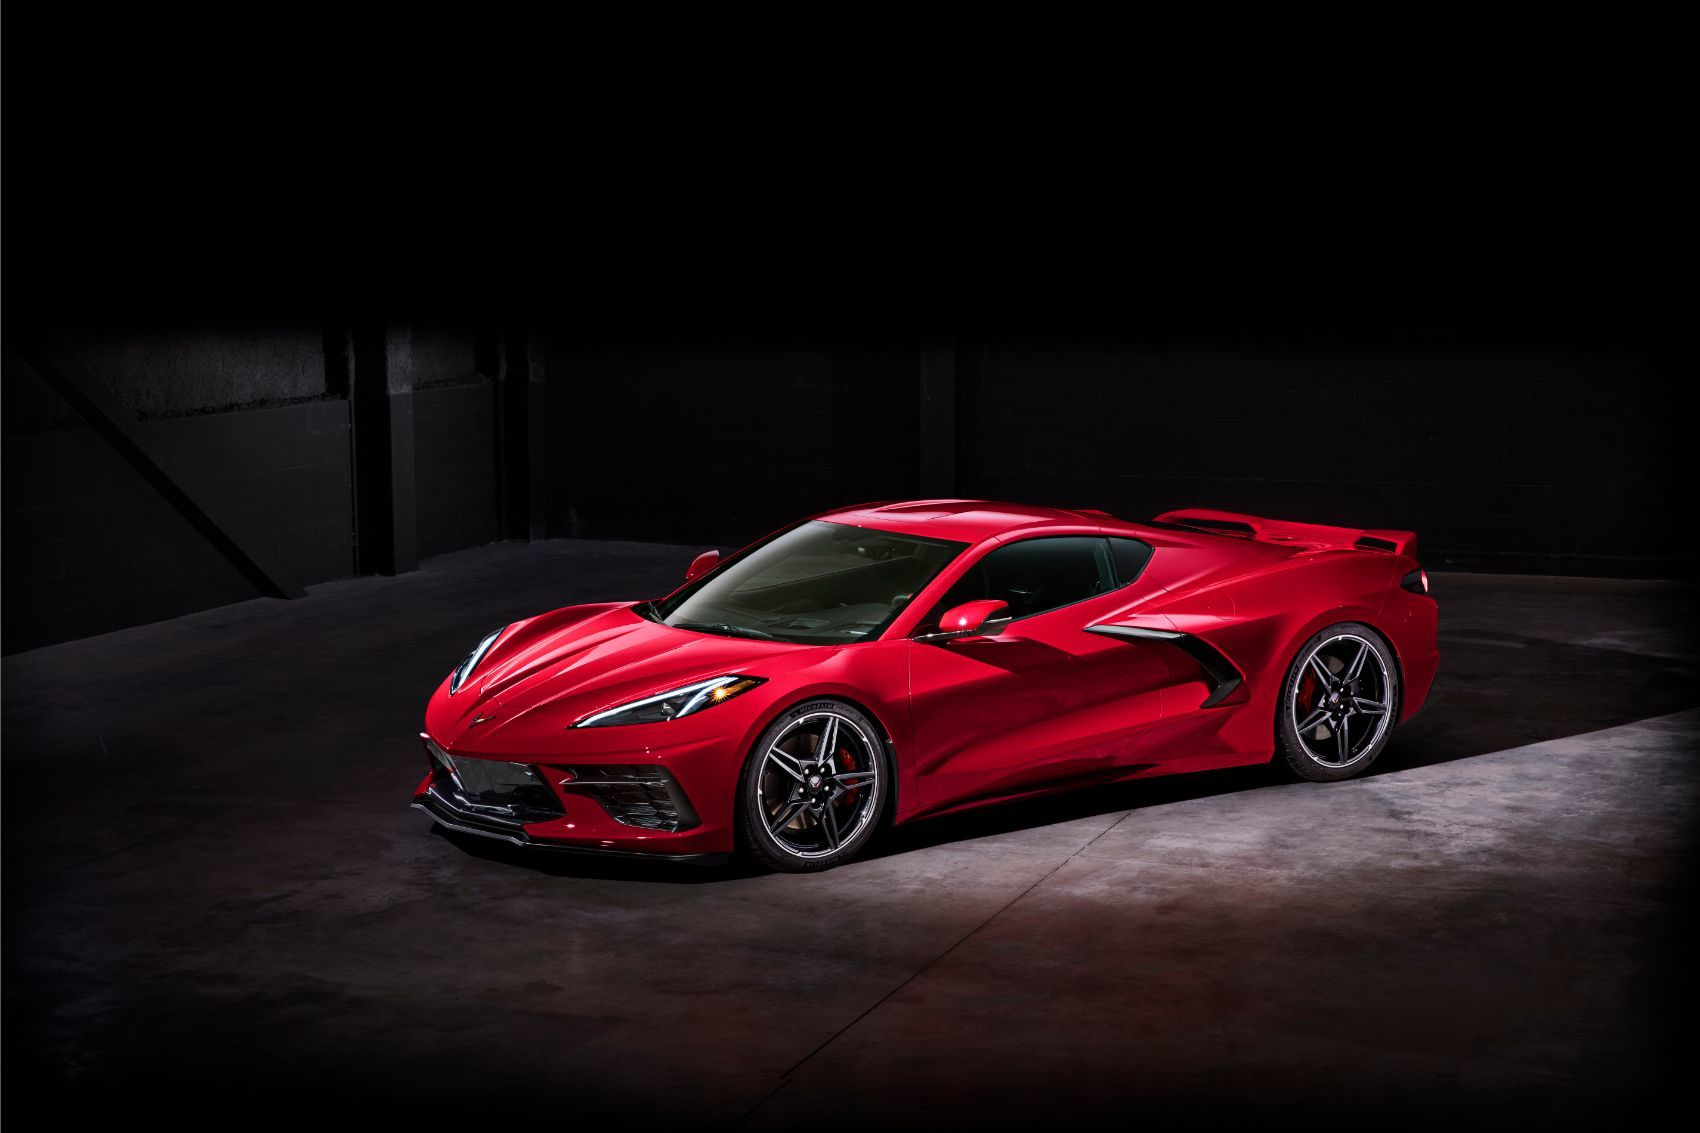 2020 Chevrolet Corvette Stingray 0221